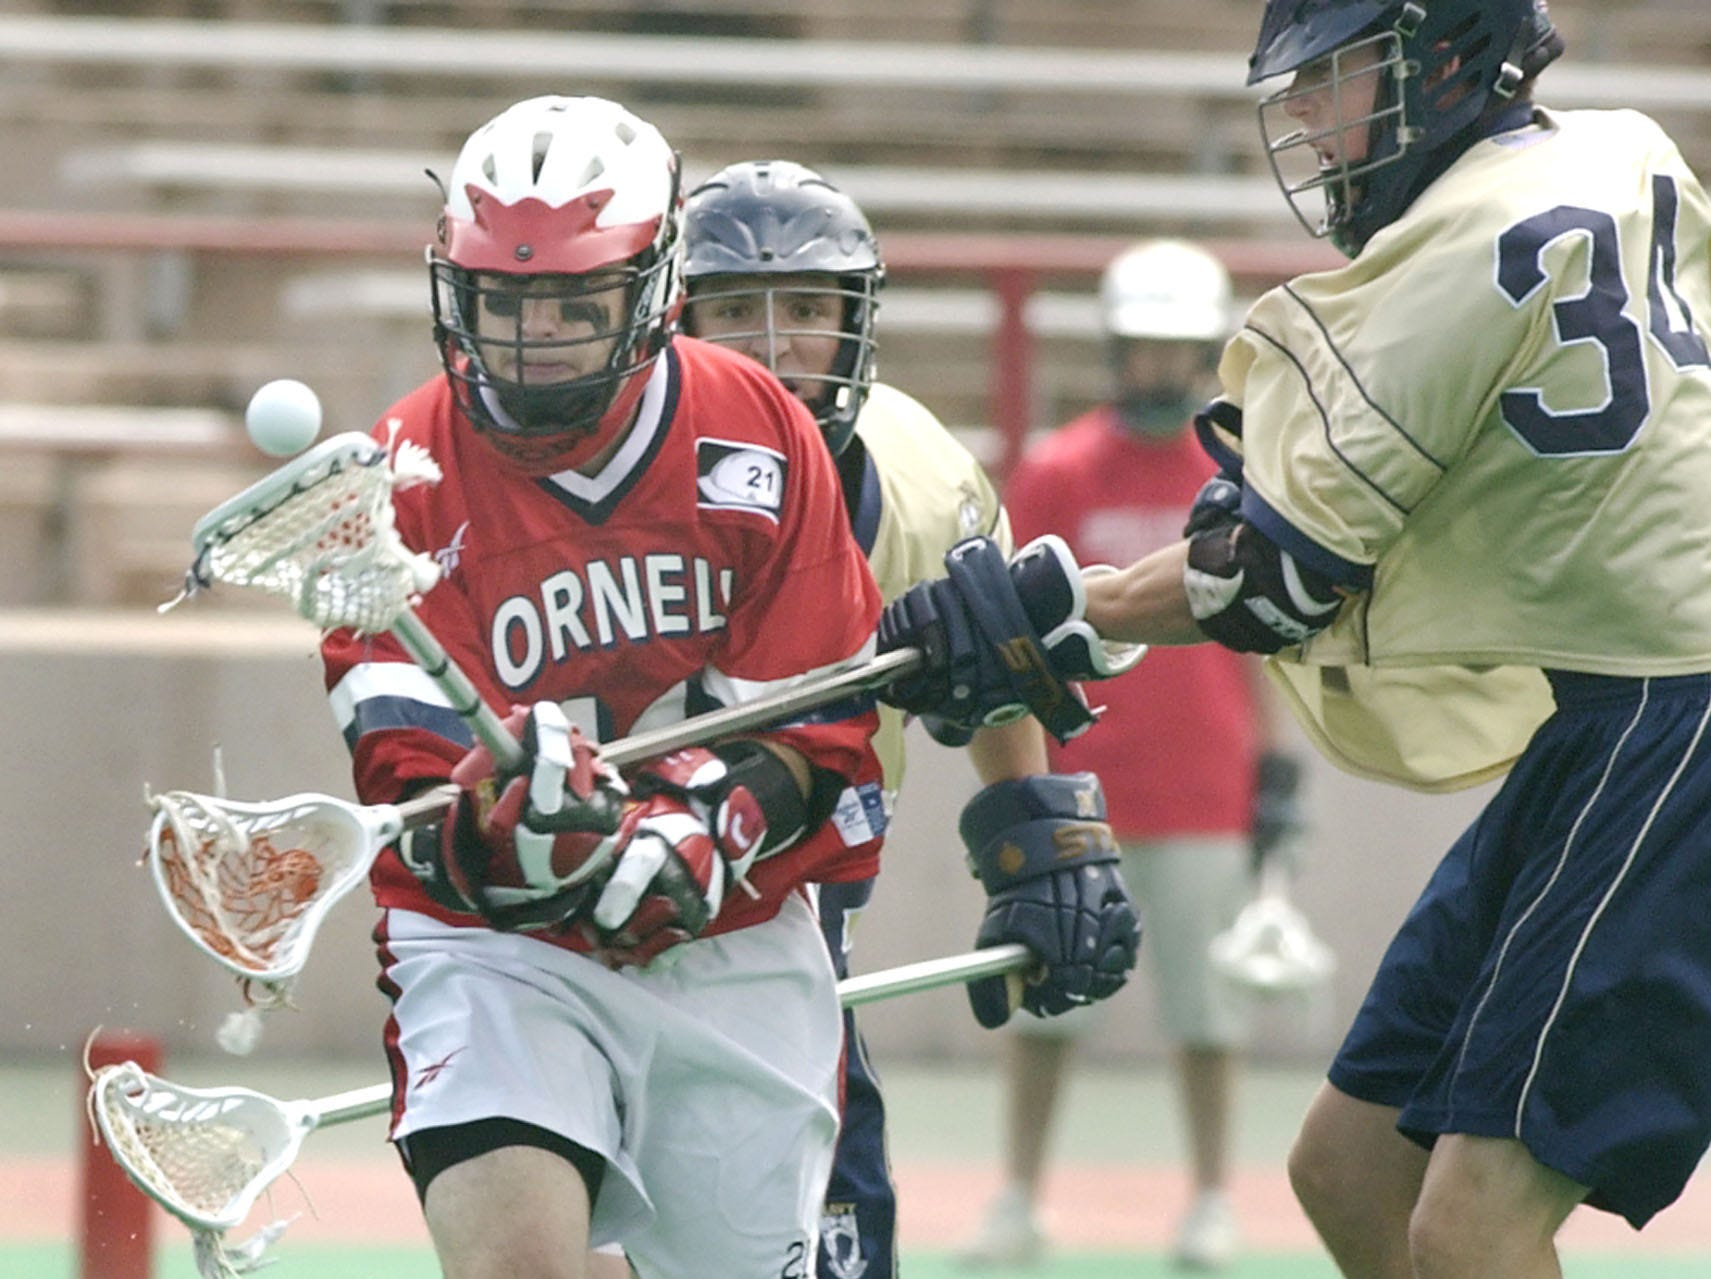 Cornell's Ian Rosenberger, left, has the ball knocked loose by Navy's Mitch Hendler (34) during the second quarter of their NCAA Division I lacrosse quarterfinal game in Ithaca, N.Y. Sunday, May 23, 2004. Navy won 6-5.